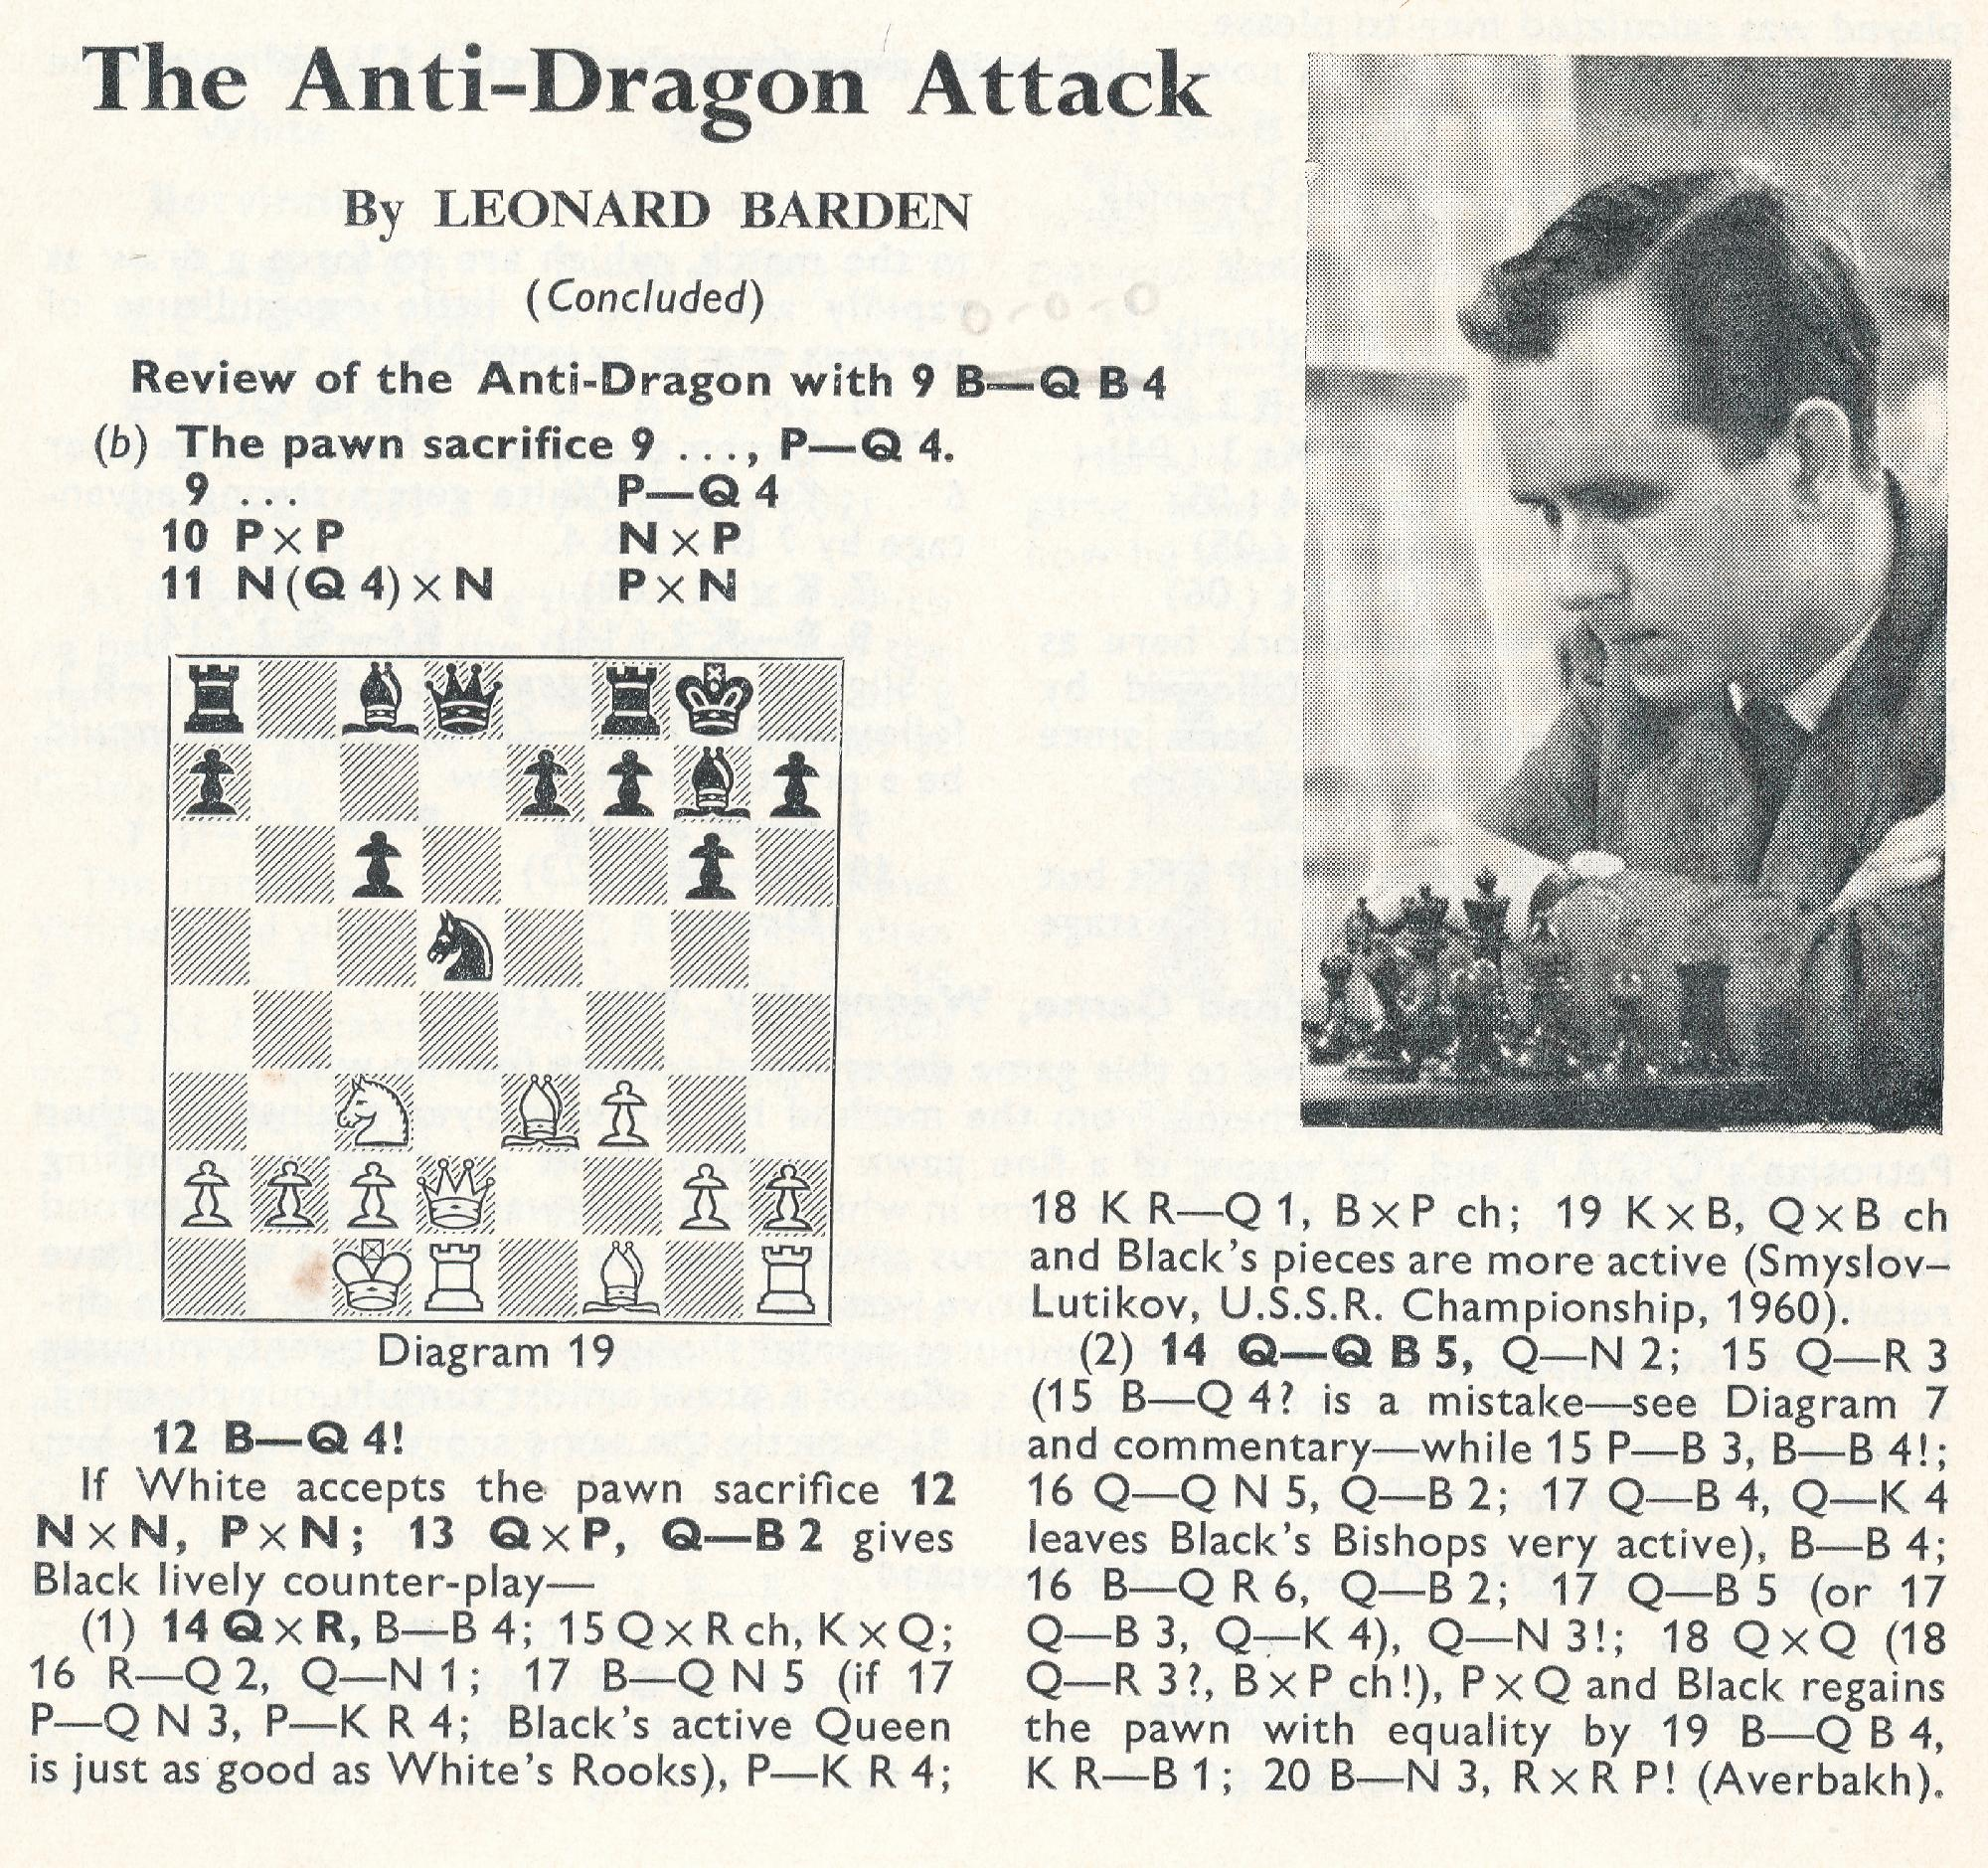 Leonard authored a series of articles on what was to become the Yugoslav Attack versus the Sicilian Dragon. Source : British Chess Magazine, Volume LXXXIII, Number 7 (July), page 208